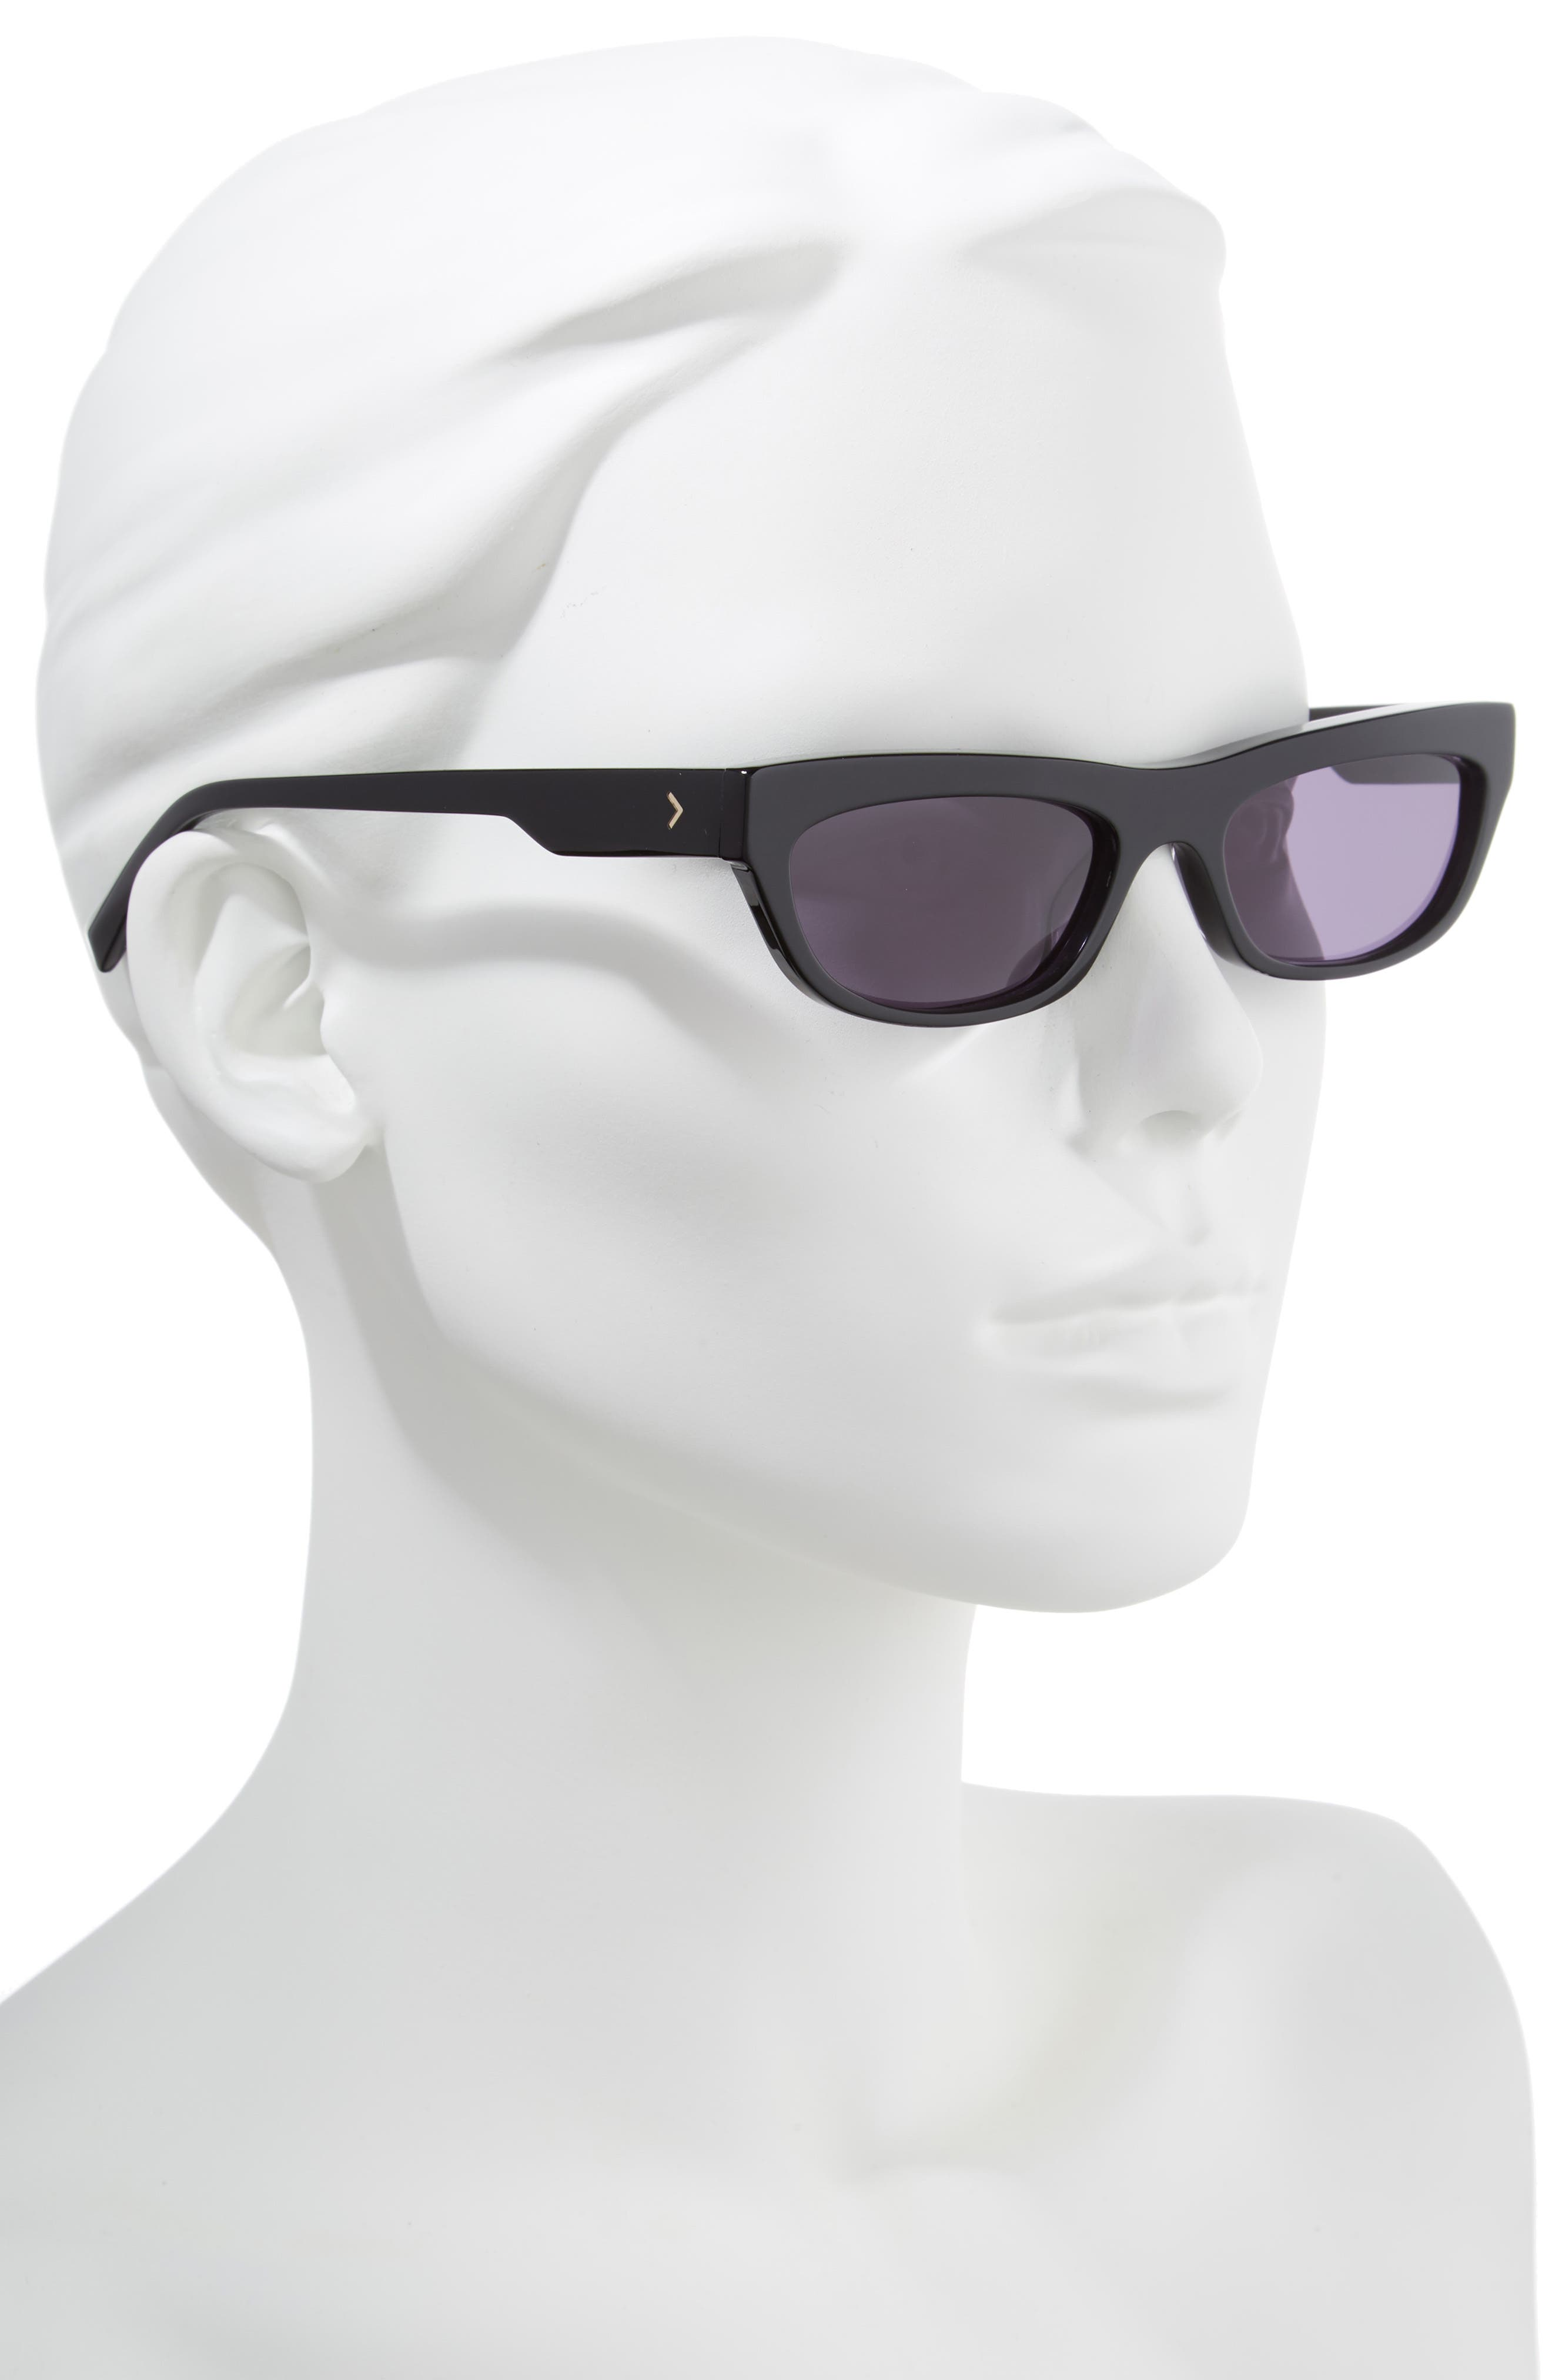 Courtney 55mm Cat Eye Sunglasses,                             Alternate thumbnail 2, color,                             001